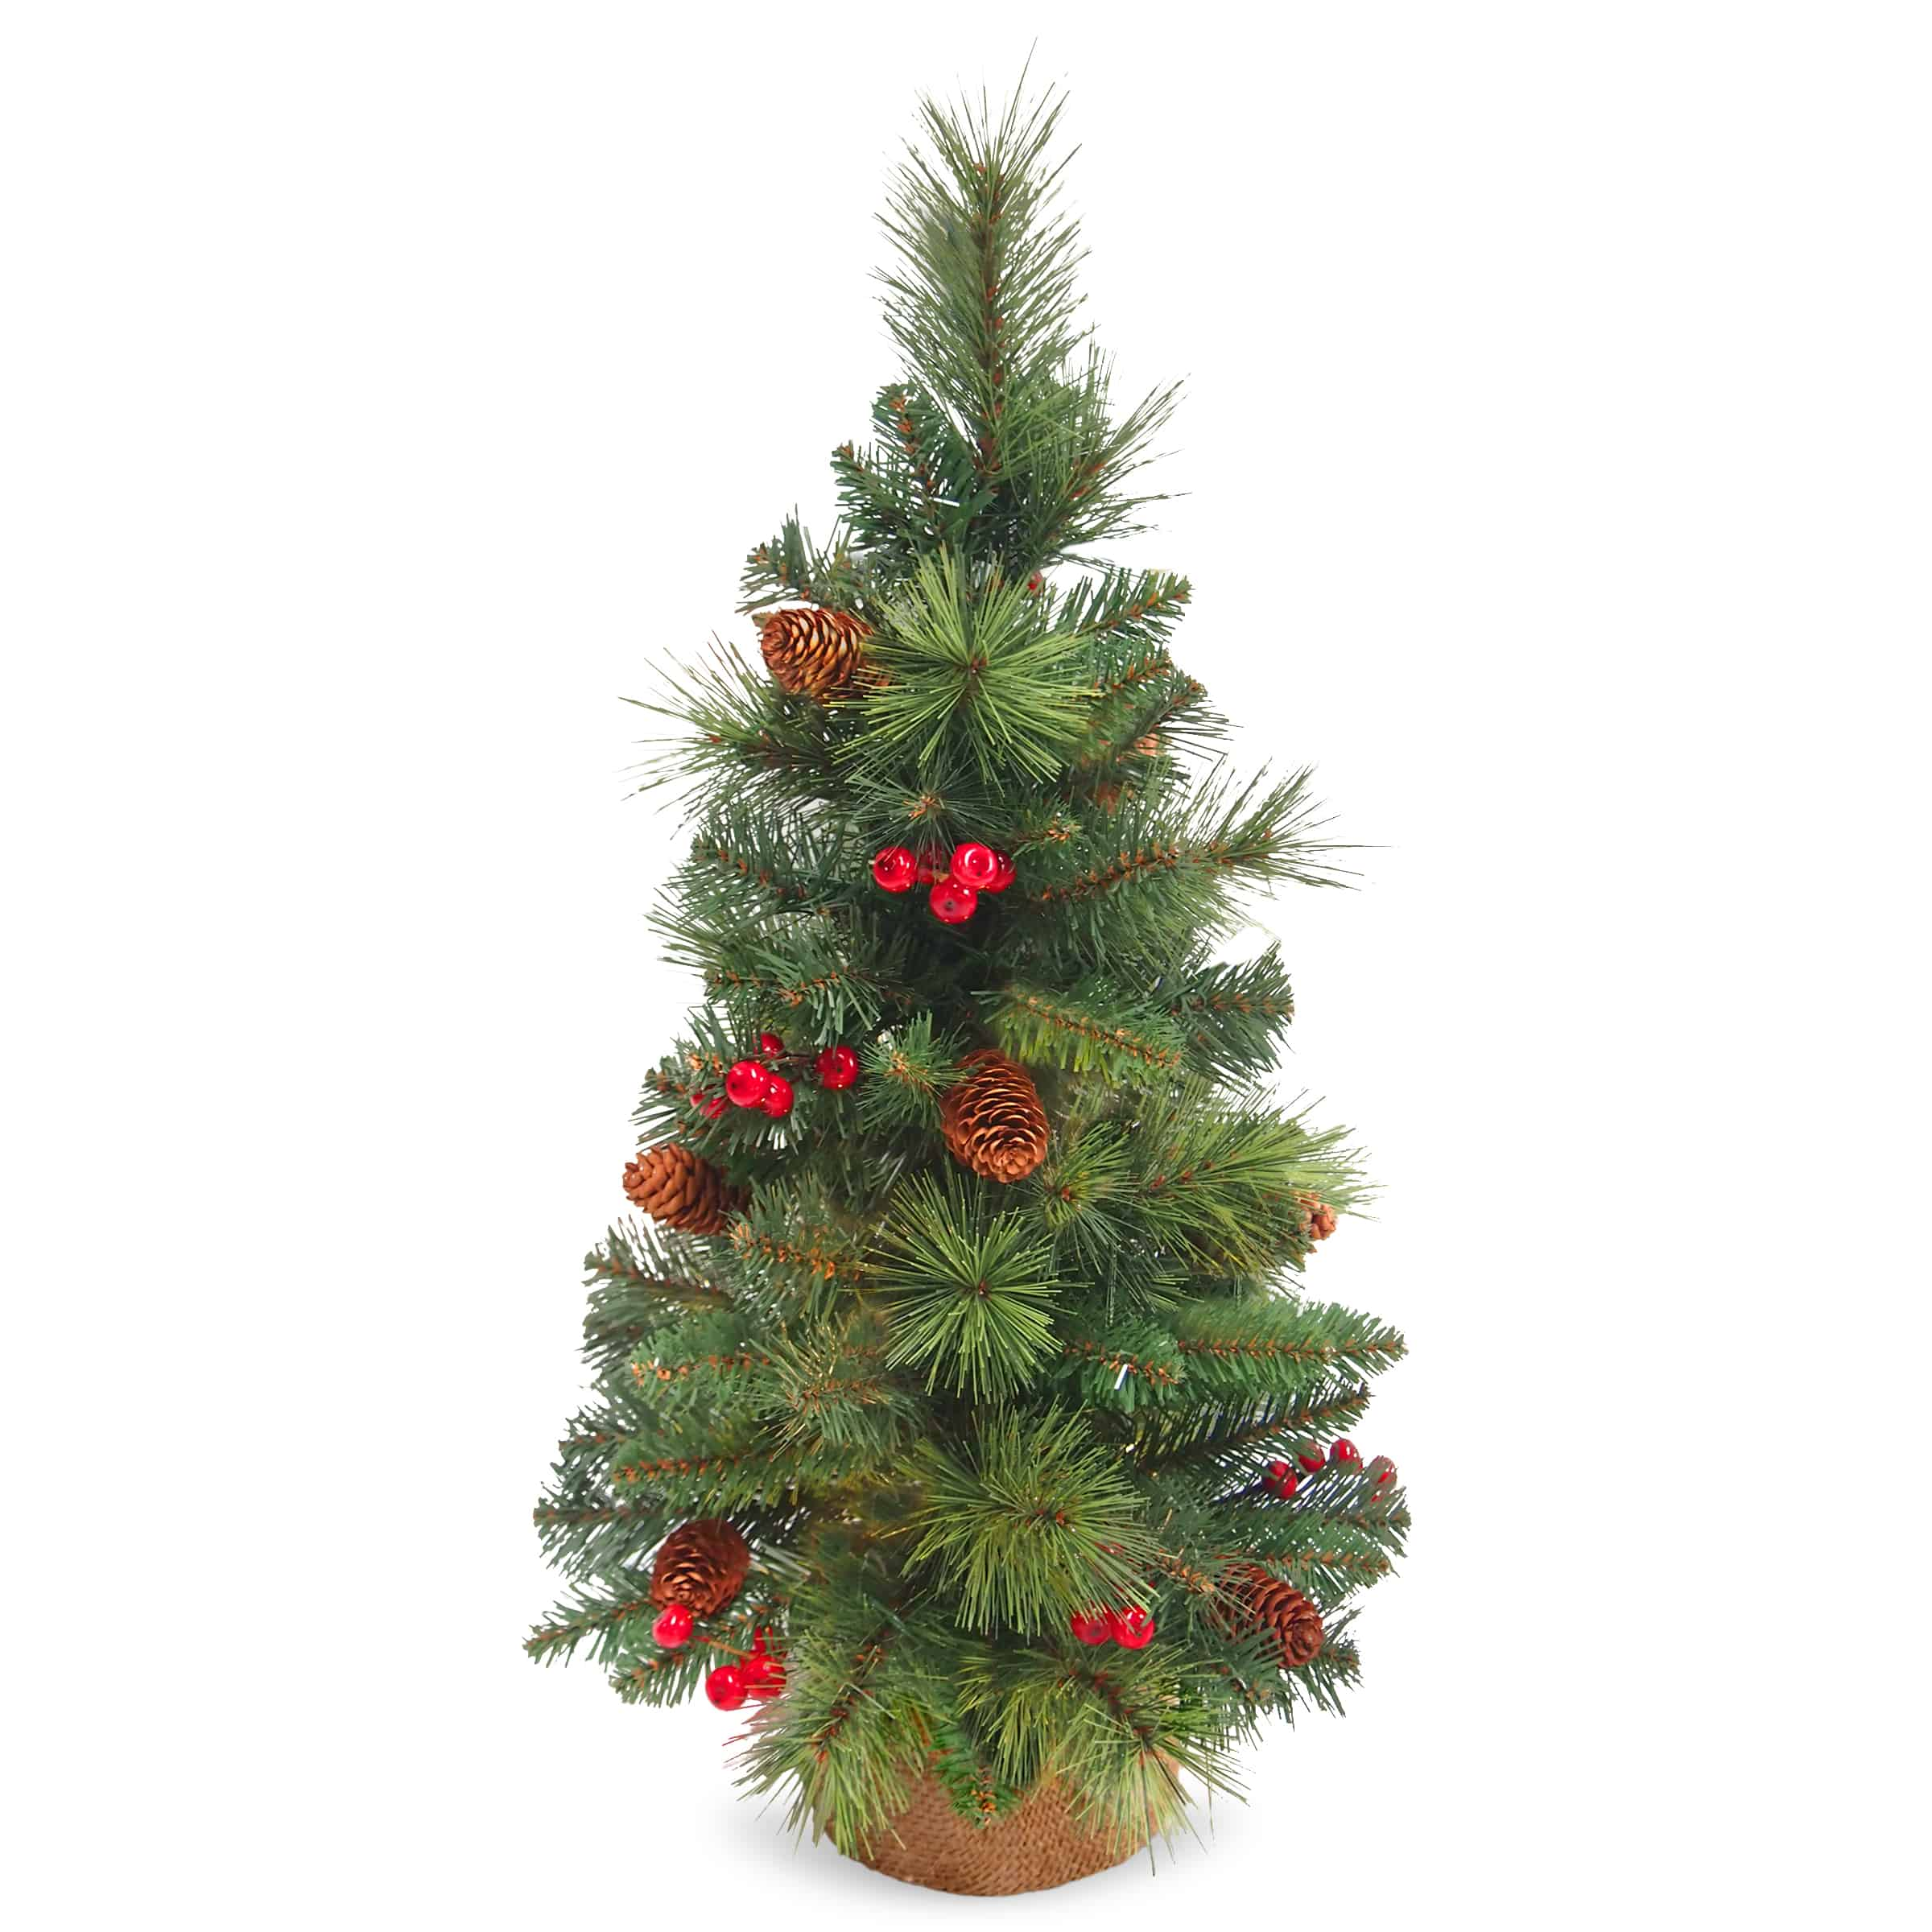 Oregon Christmas Trees.2 5ft Everyday Collection Mini Christmas Tree With Cones And Berries